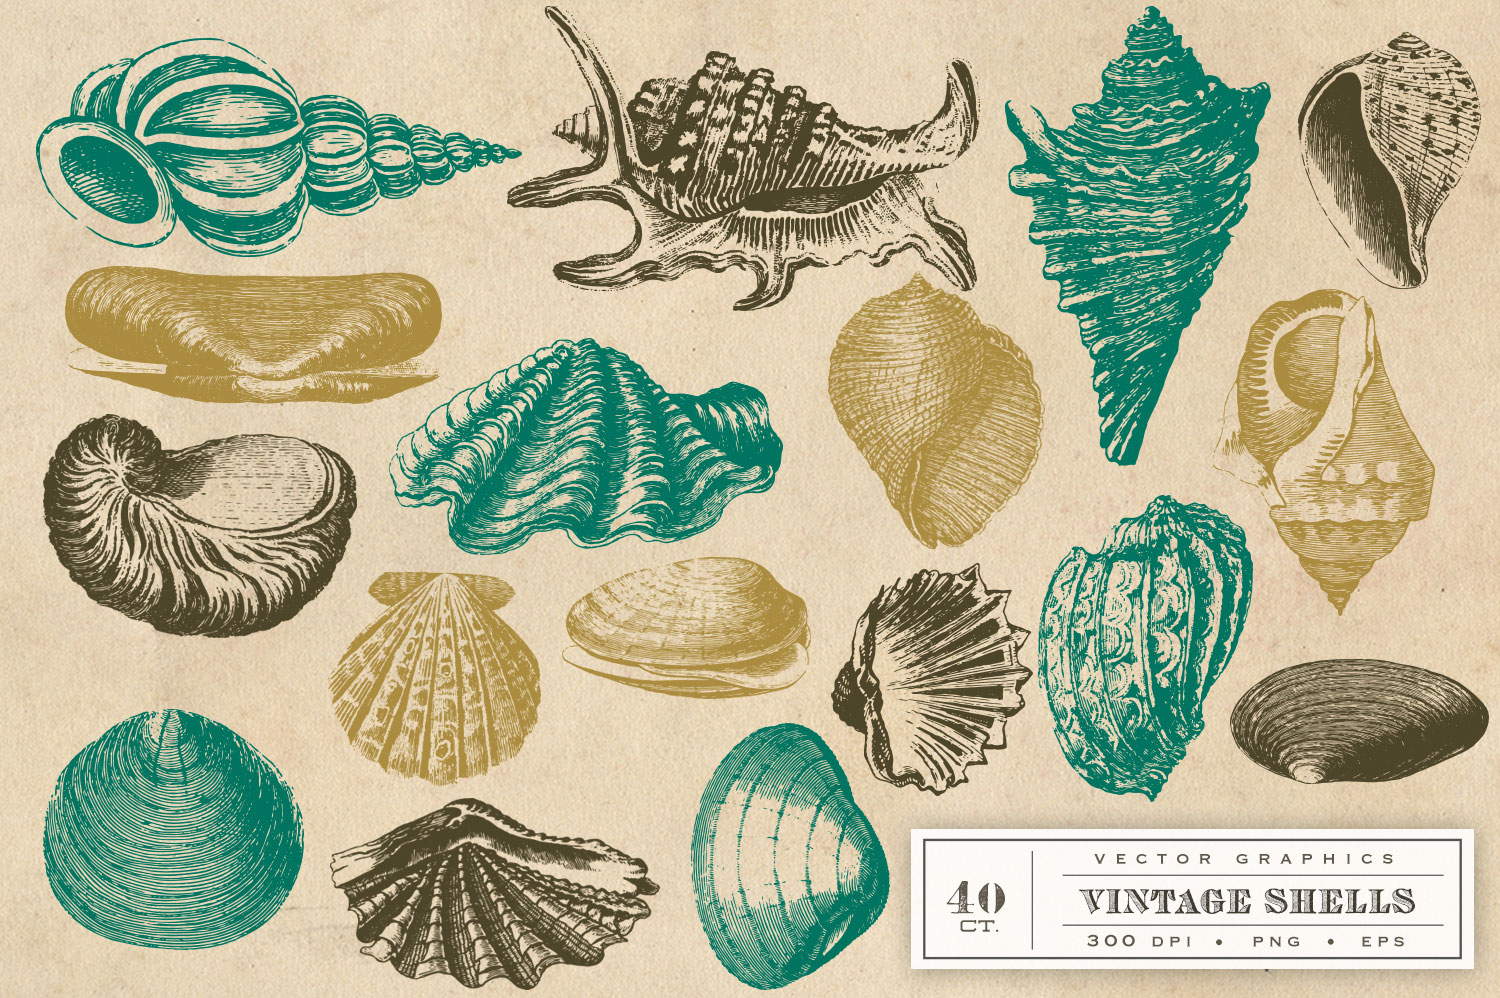 Vintage Shell Vector Graphics example image 3